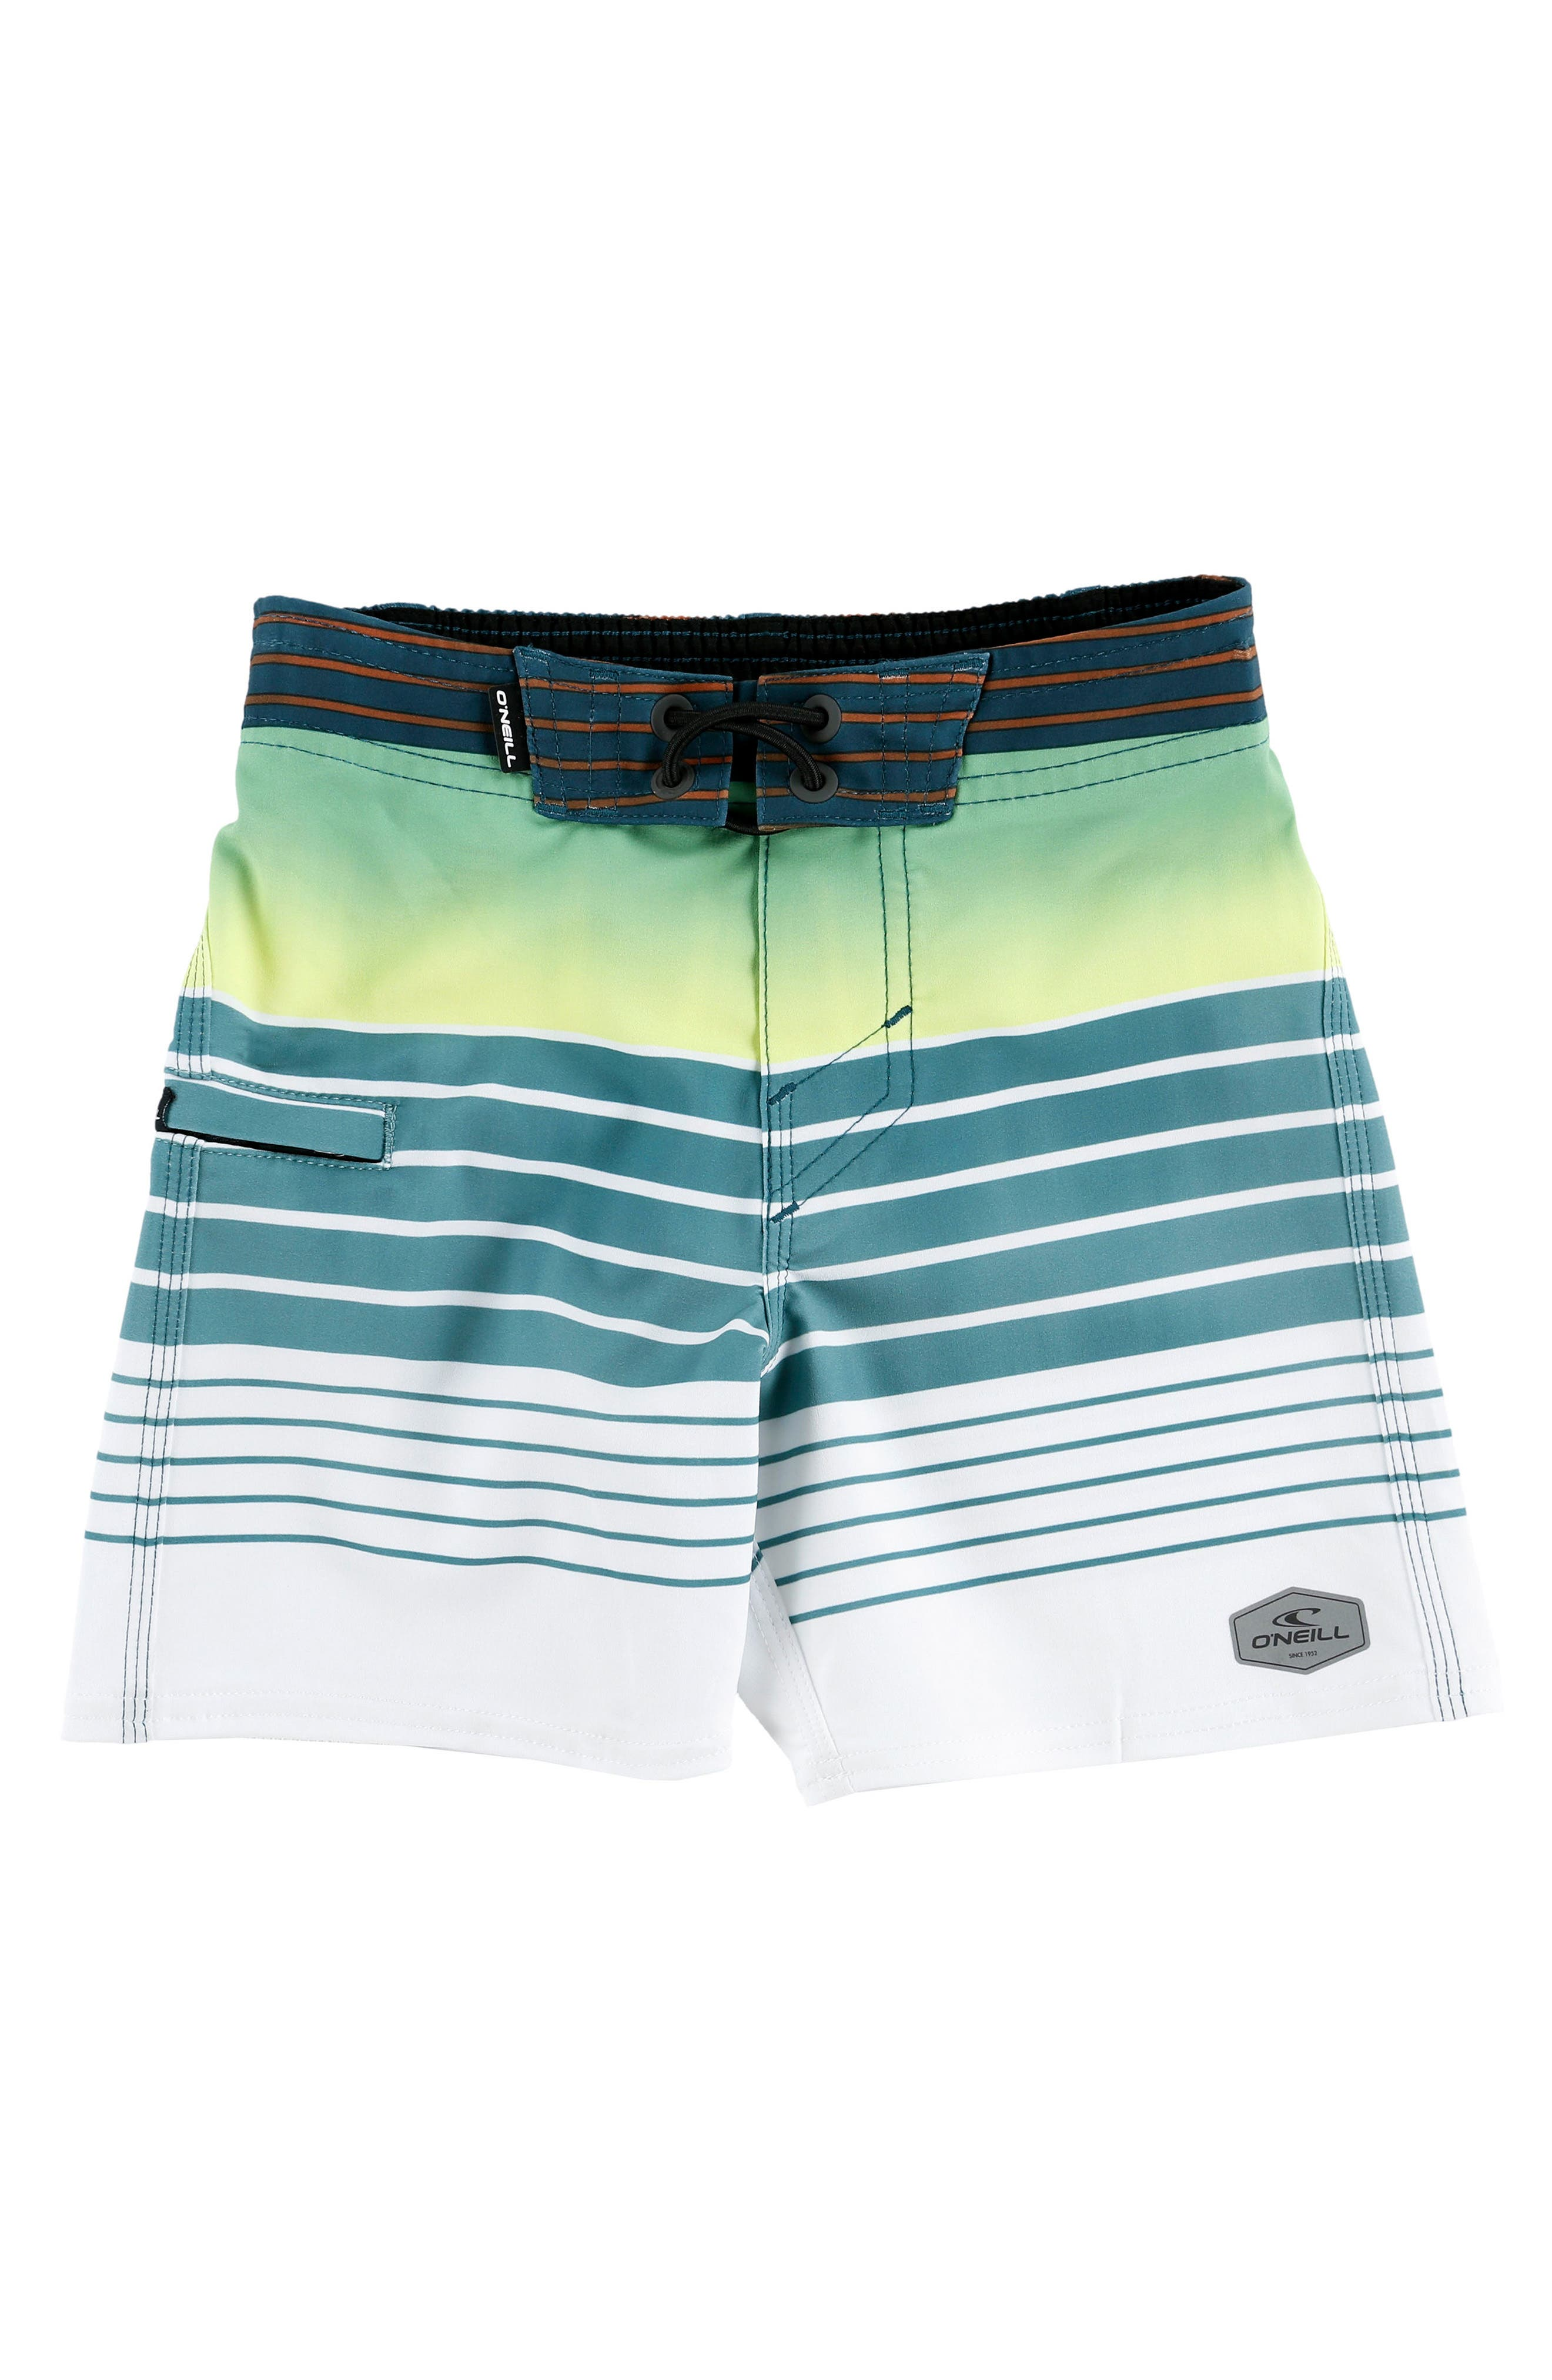 Hyperfreak Heist Board Shorts,                             Main thumbnail 6, color,